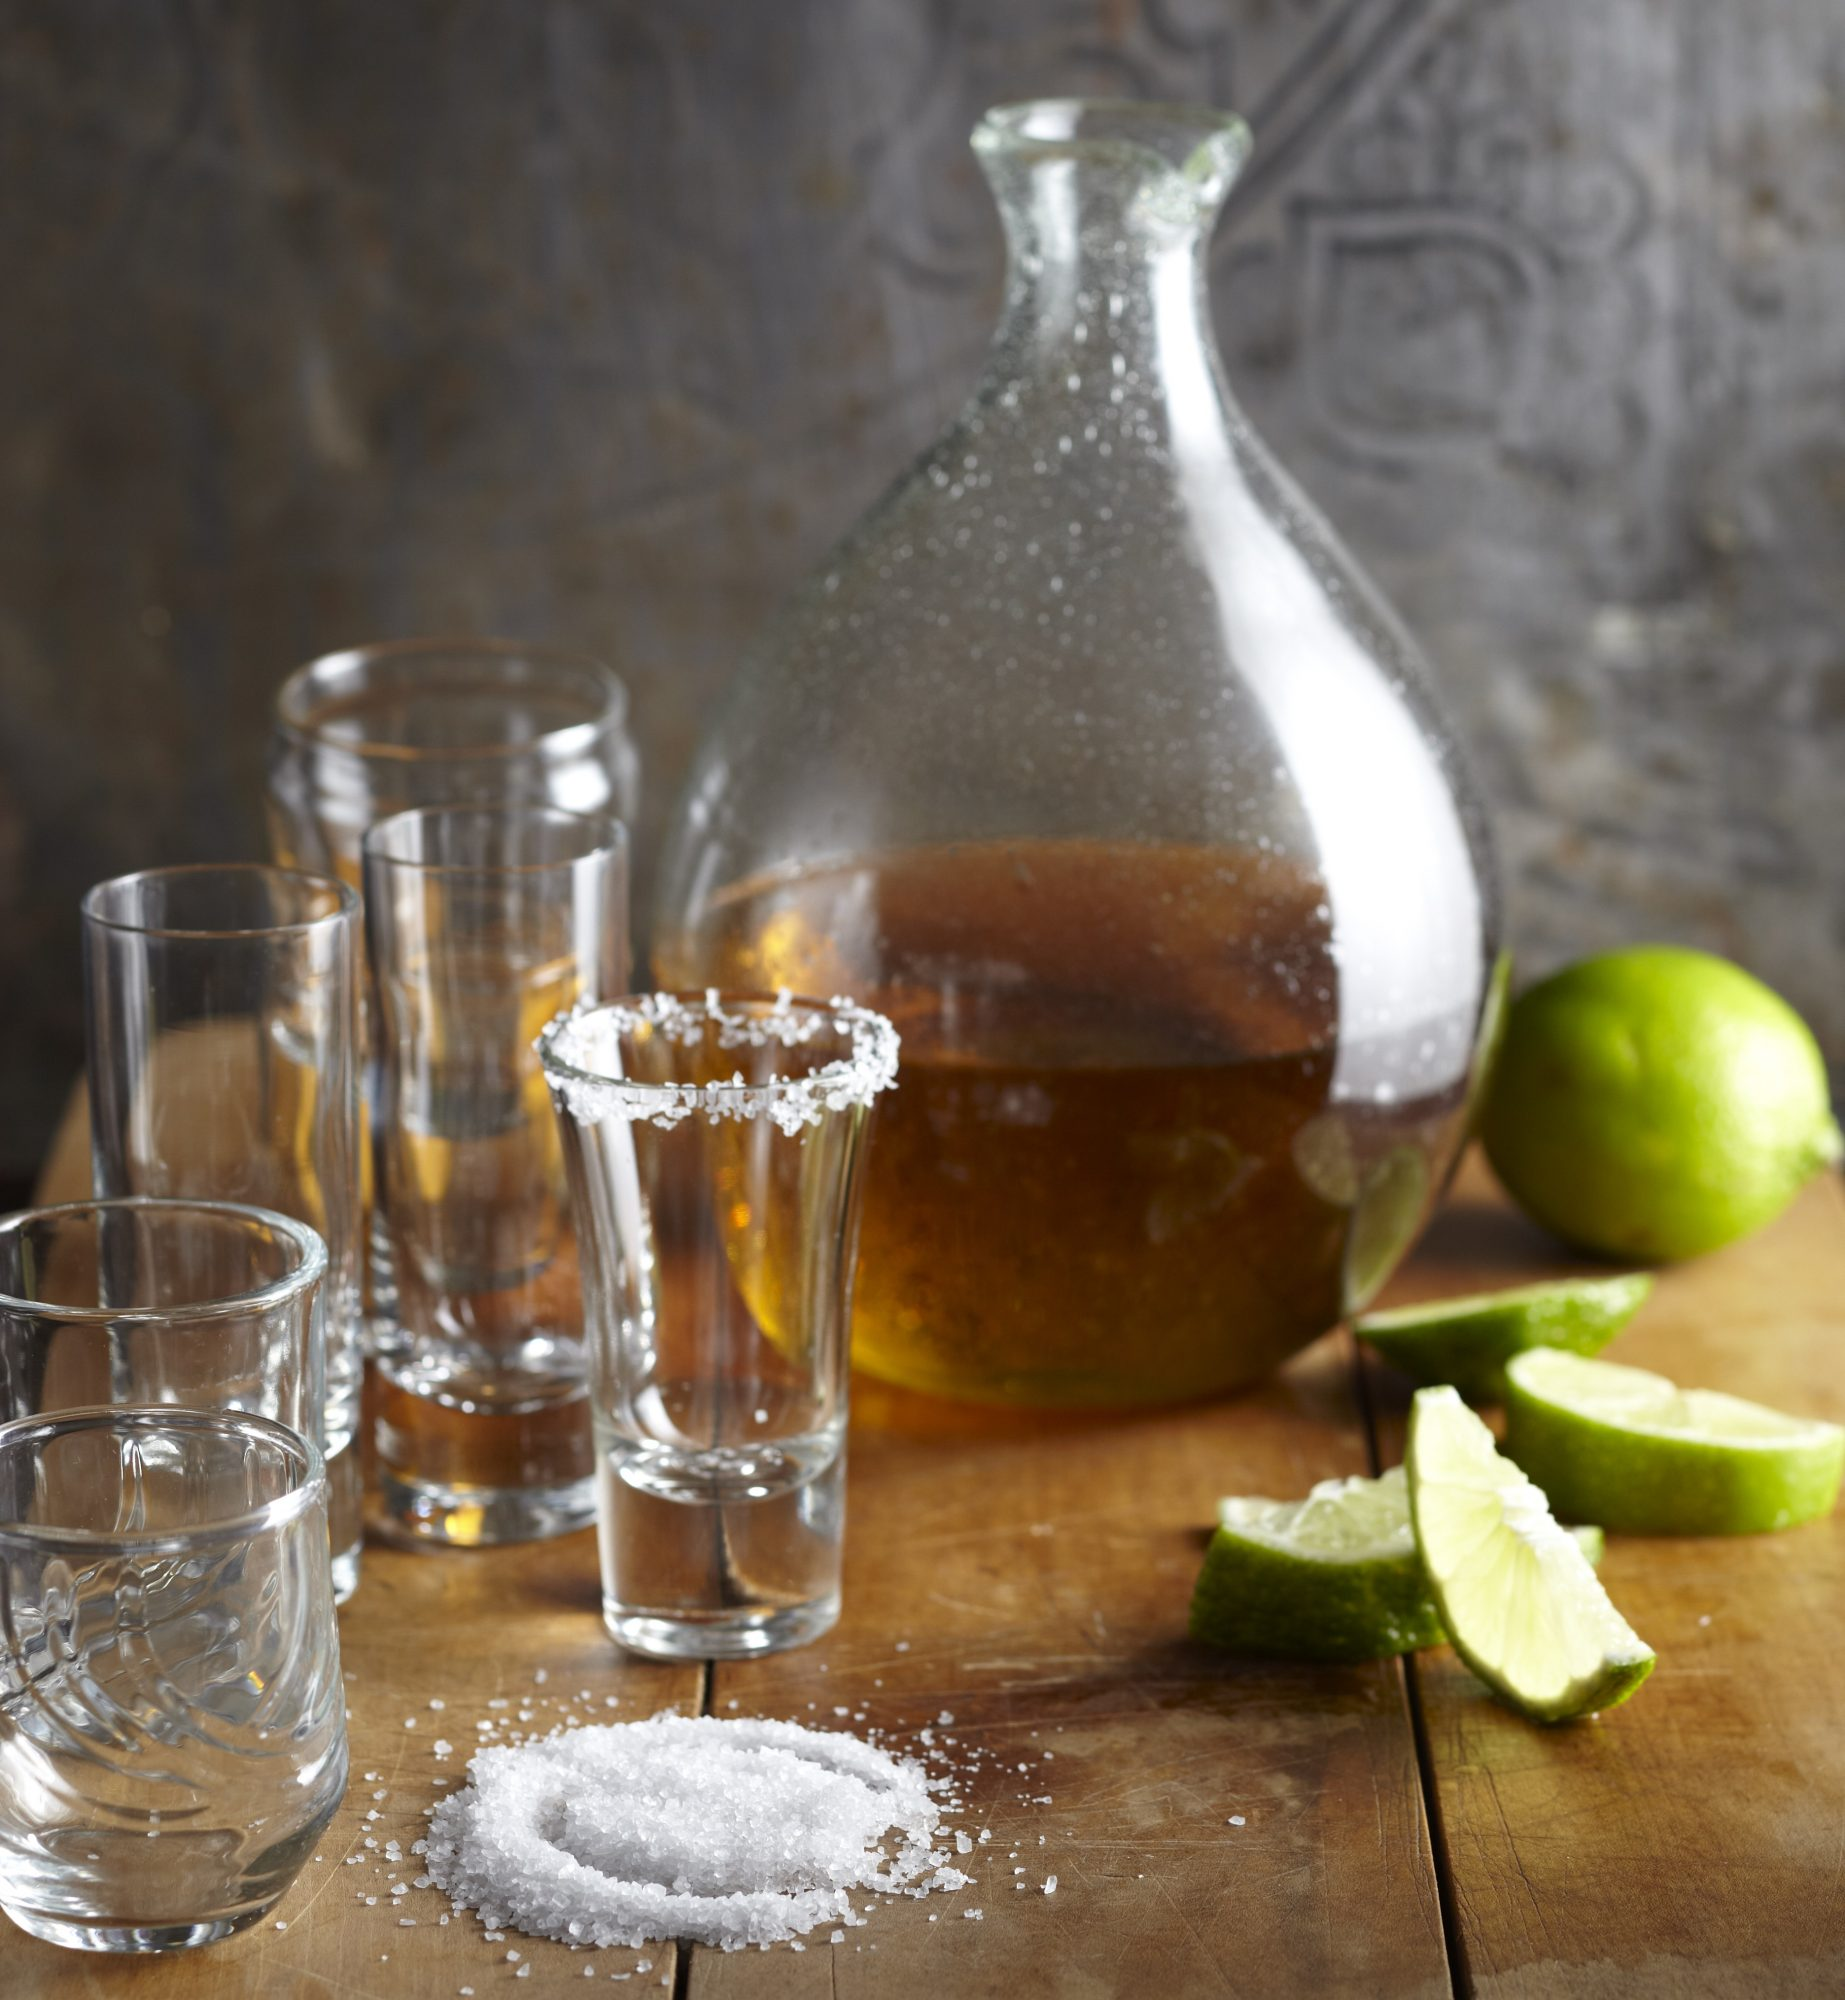 Tequila shots with limes and salt